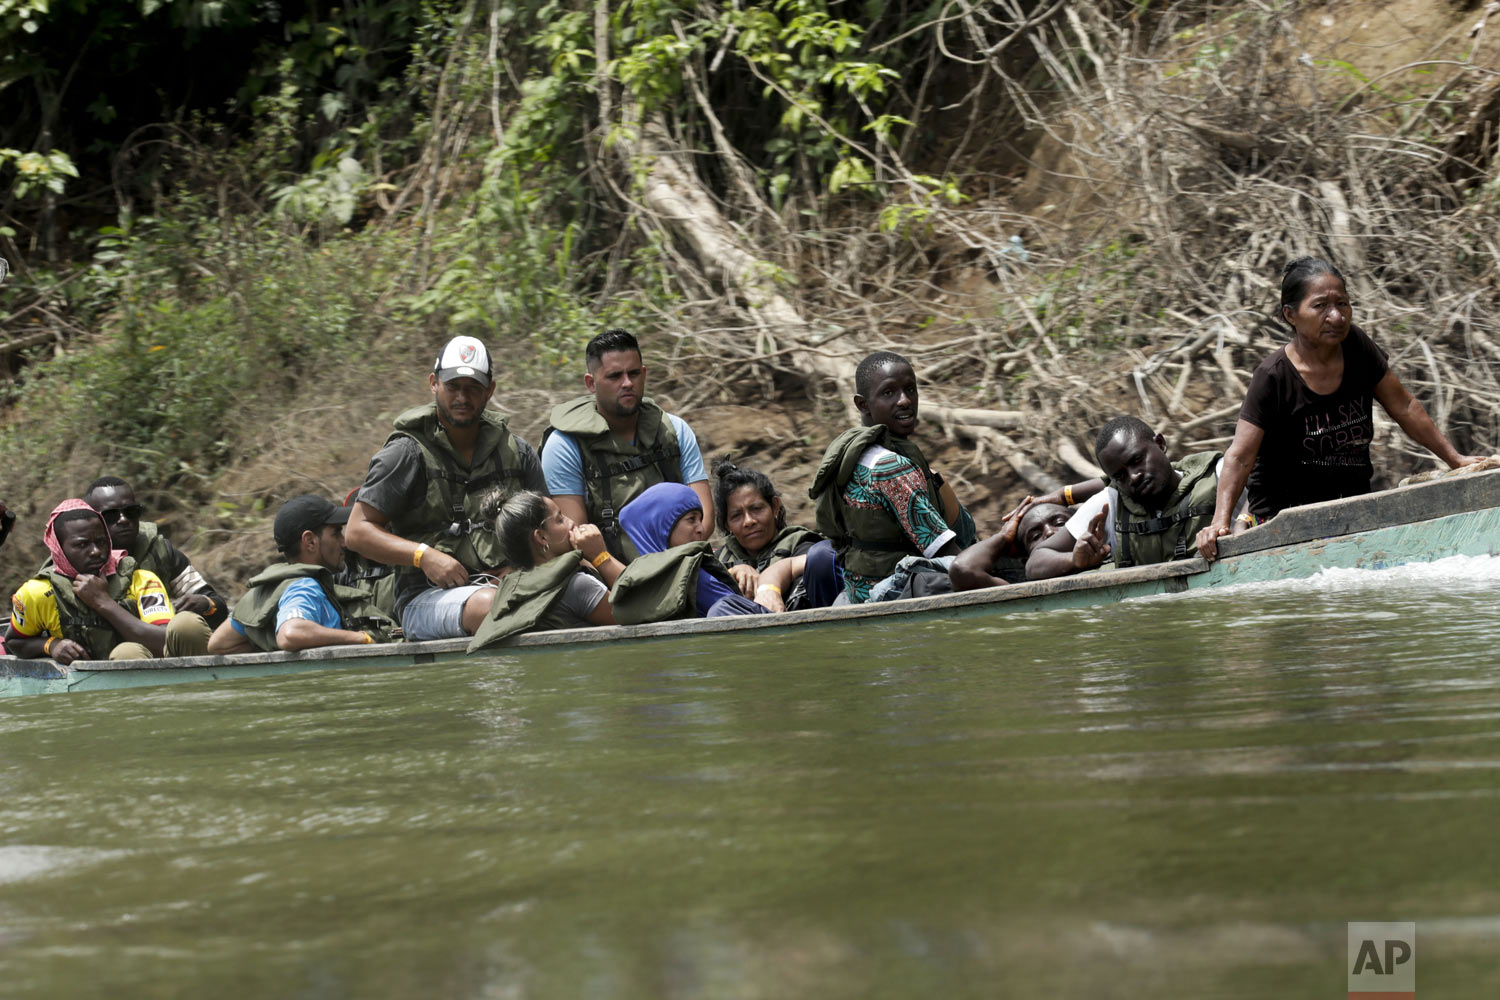 Migrants travel on a dangerously overloaded boat, on the Tuquesa river on their way to Peñitas, from Bajo Chiquito, Darien province, Panama, on Saturday, May 25, 2019. After trekking for days from Colombia, migrants arriving at Bajo Chiquito, feel relief. It's a place to rest, seek sustenance, communicate with loved ones to let them know they're OK and recover their strength, but ahead lies one last trek to safety by boat or by foot. (AP Photo/Arnulfo Franco)